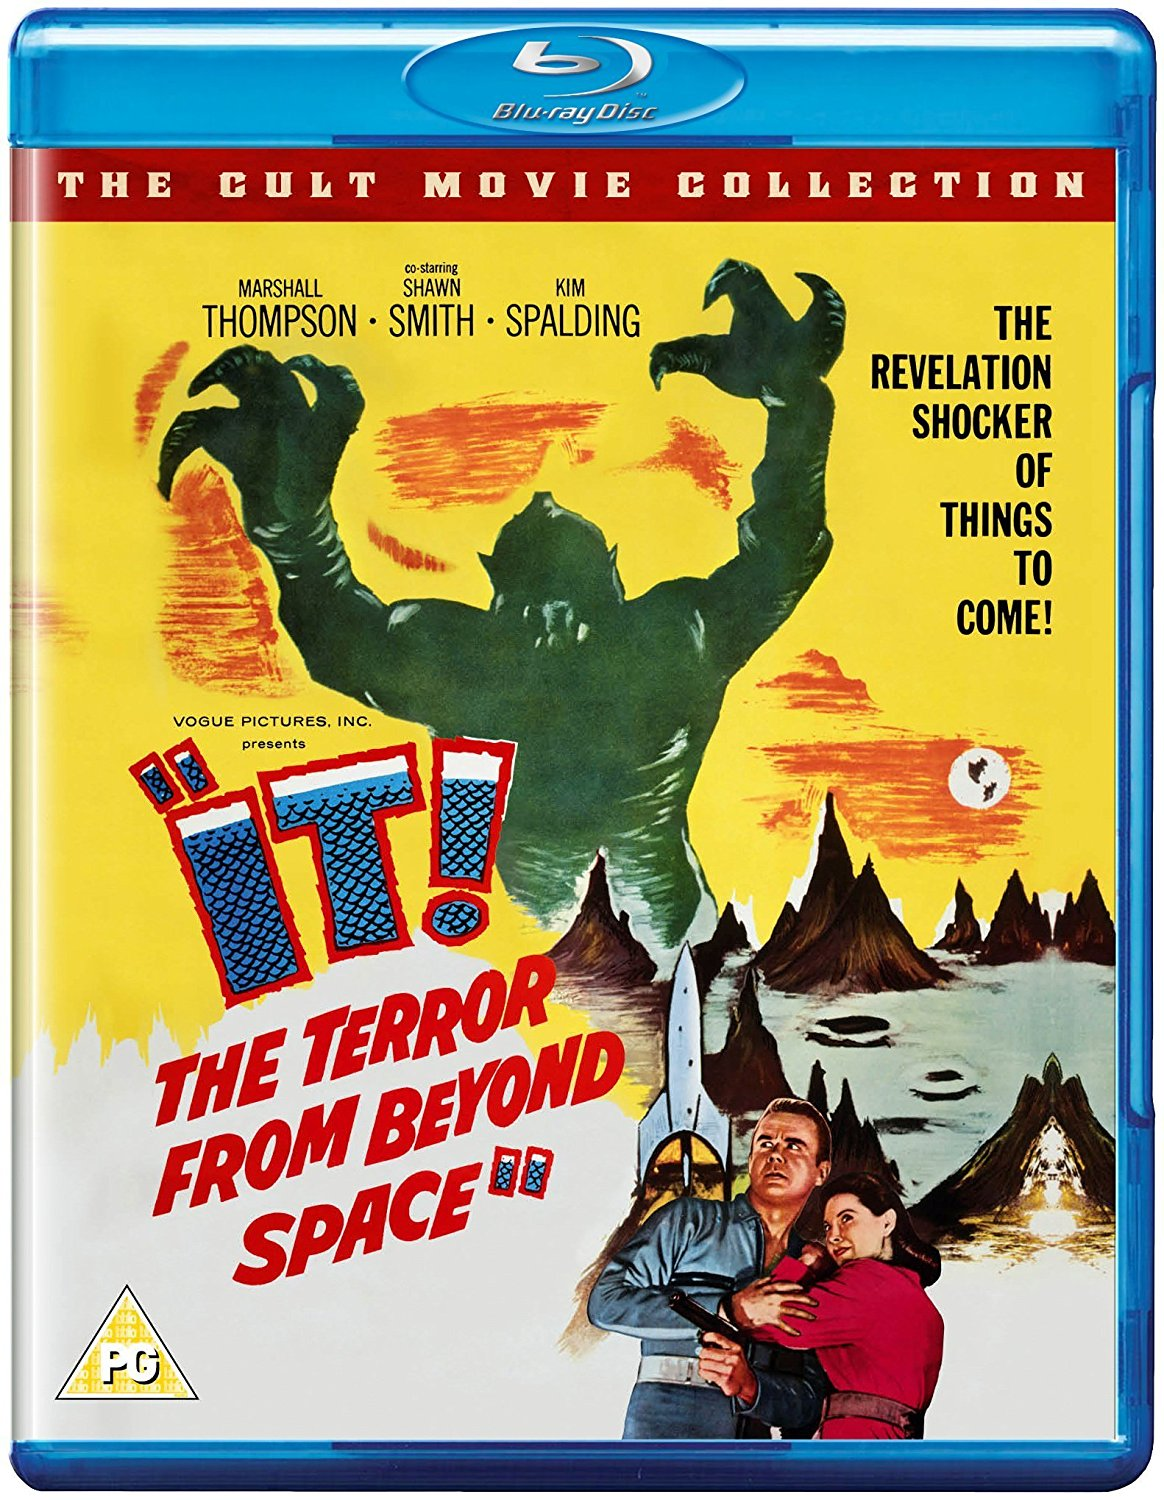 It! The Terror from Beyond Space (1958) starring Marshall Thompson, Shawn Smith, Kim Spalding